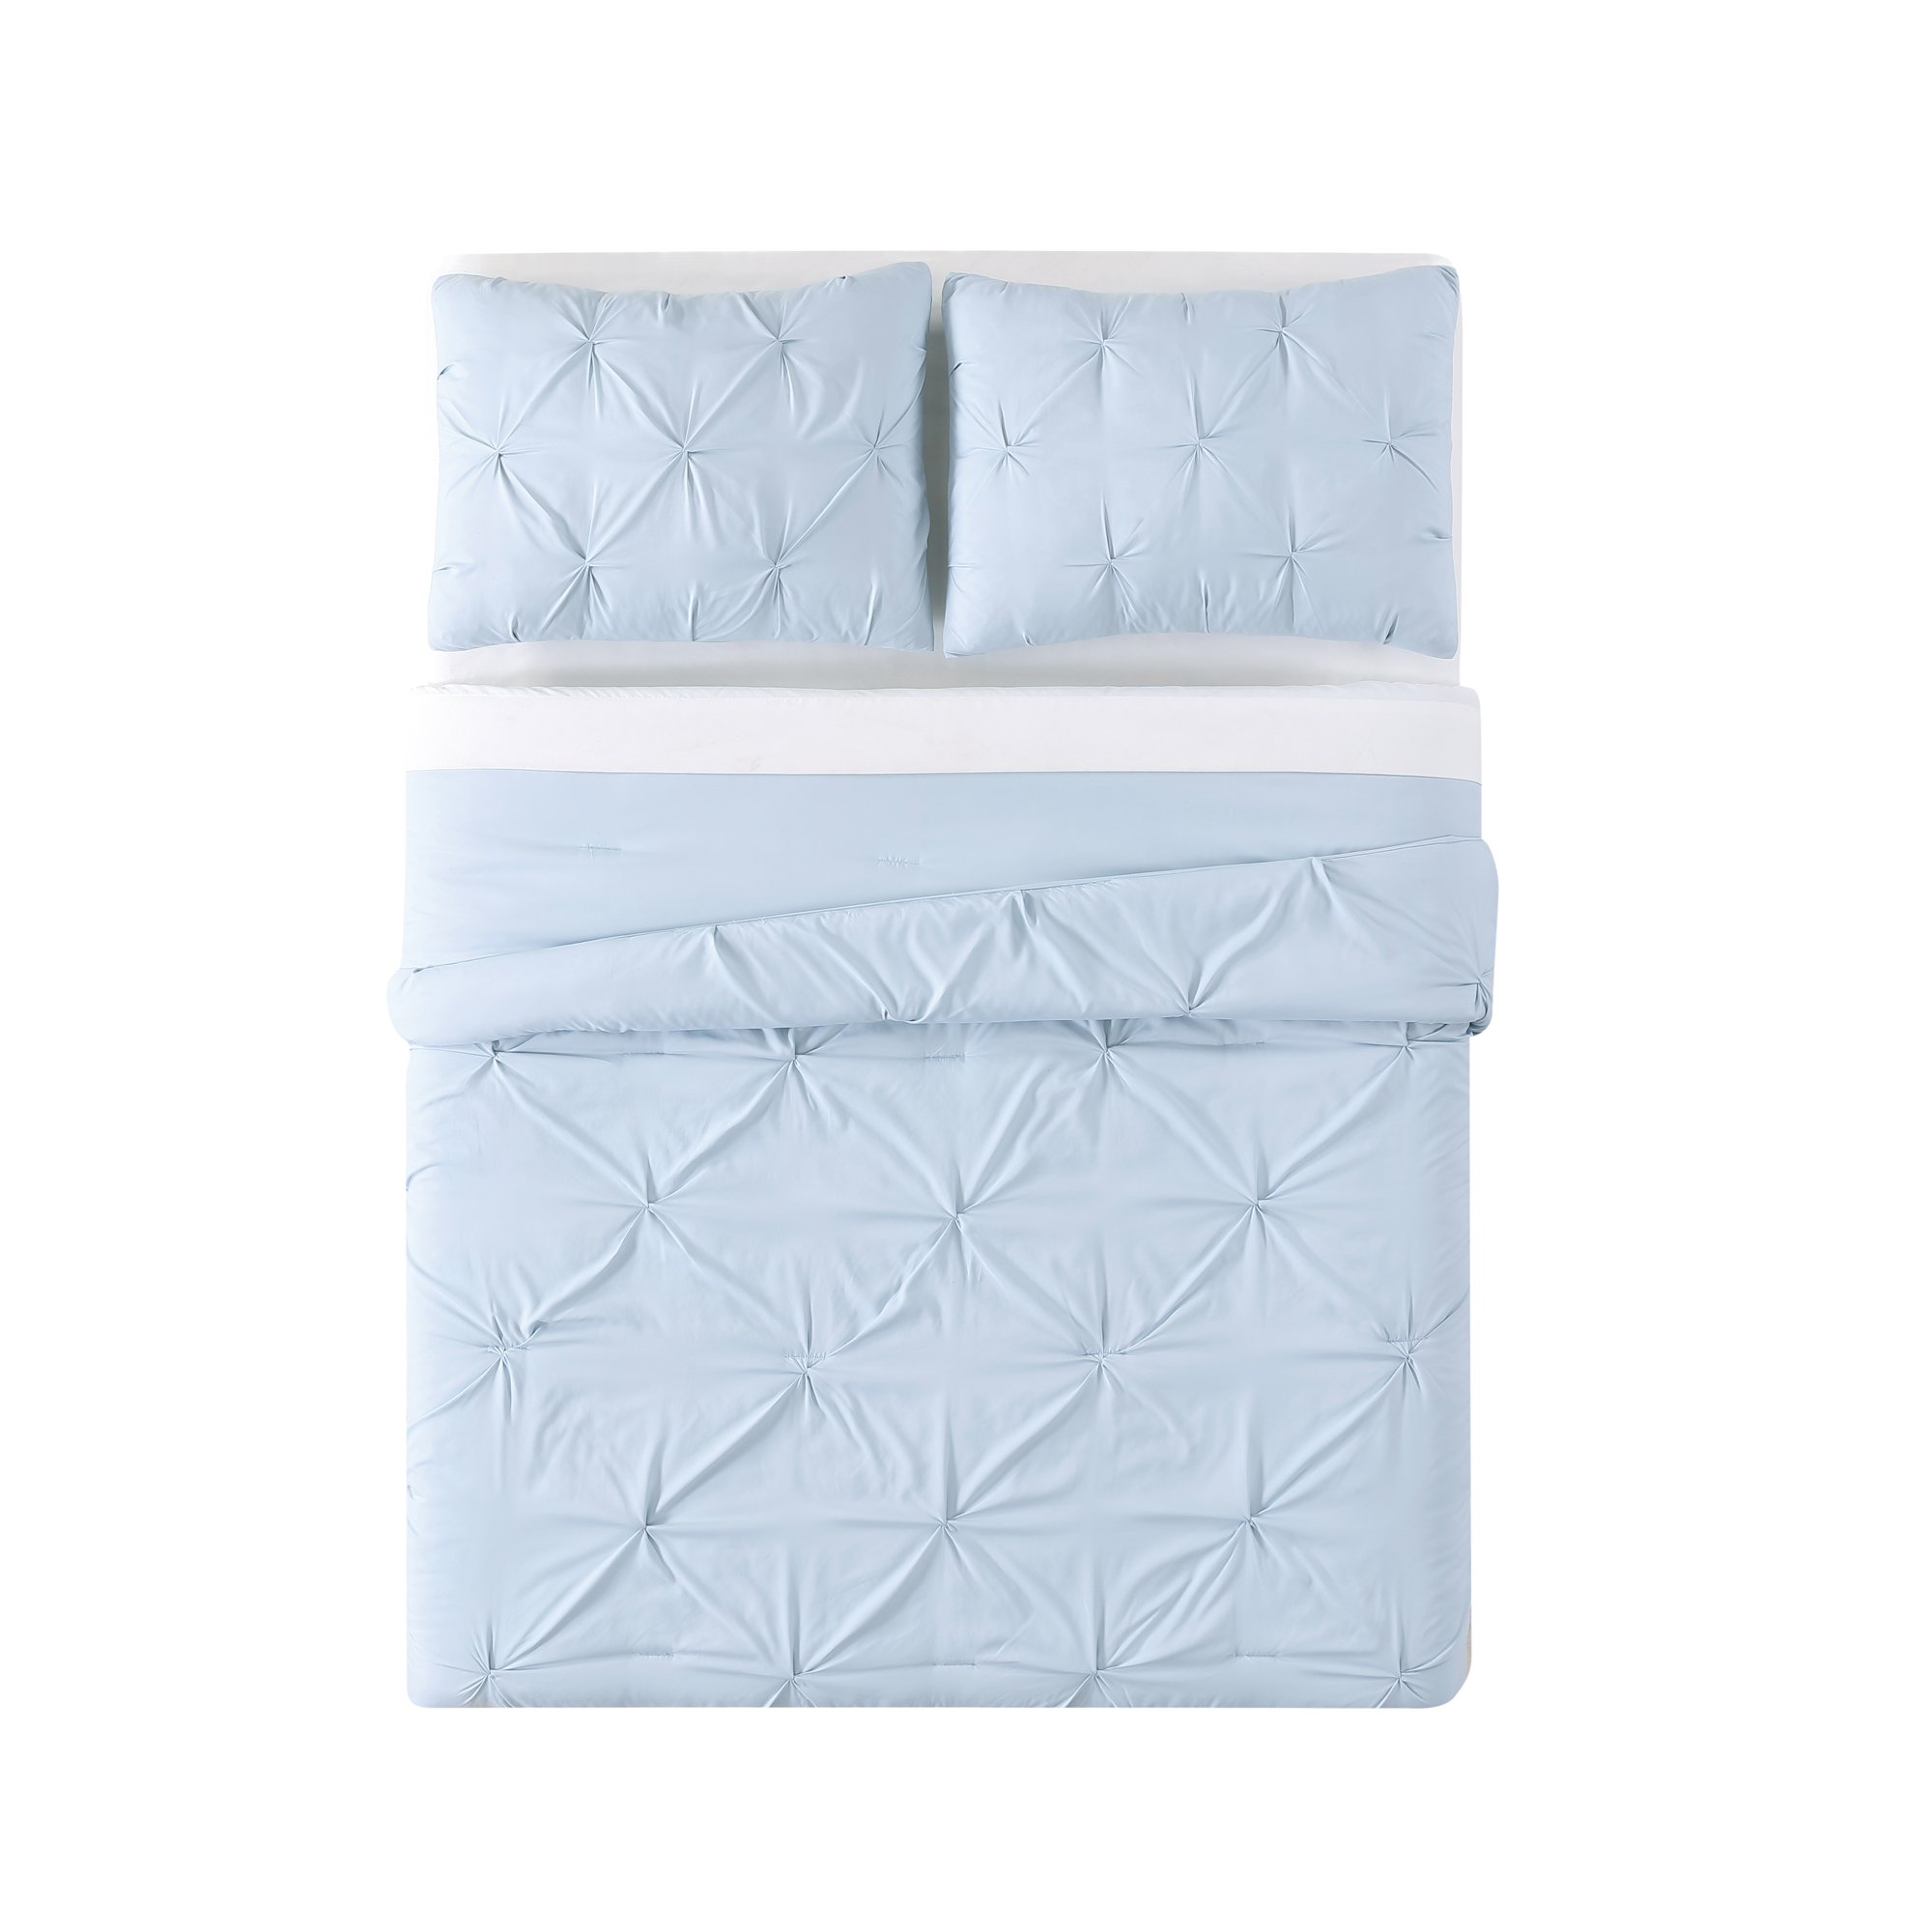 Truly Soft Everyday Pleated Comforter Set, Twin X-Large, Light Blue by Truly Soft Everyday (Image #3)